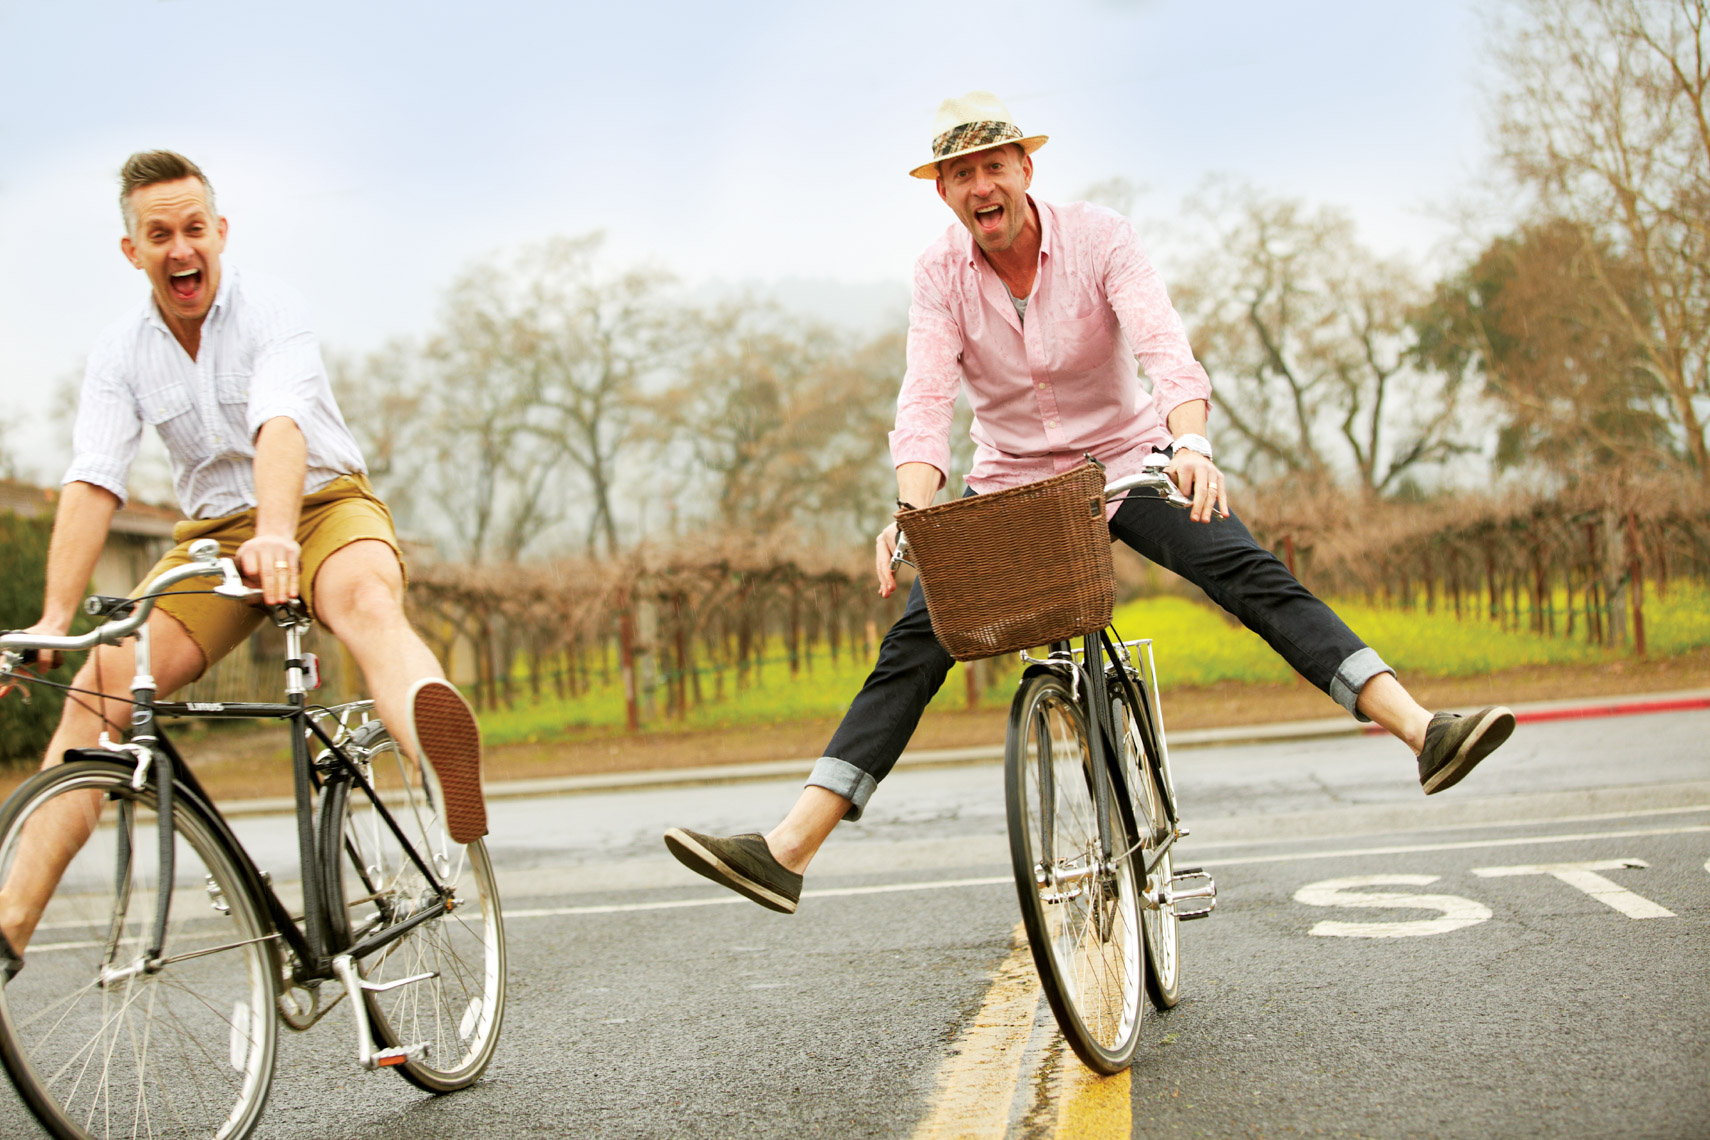 Two men riding bikes on road with feet in the air